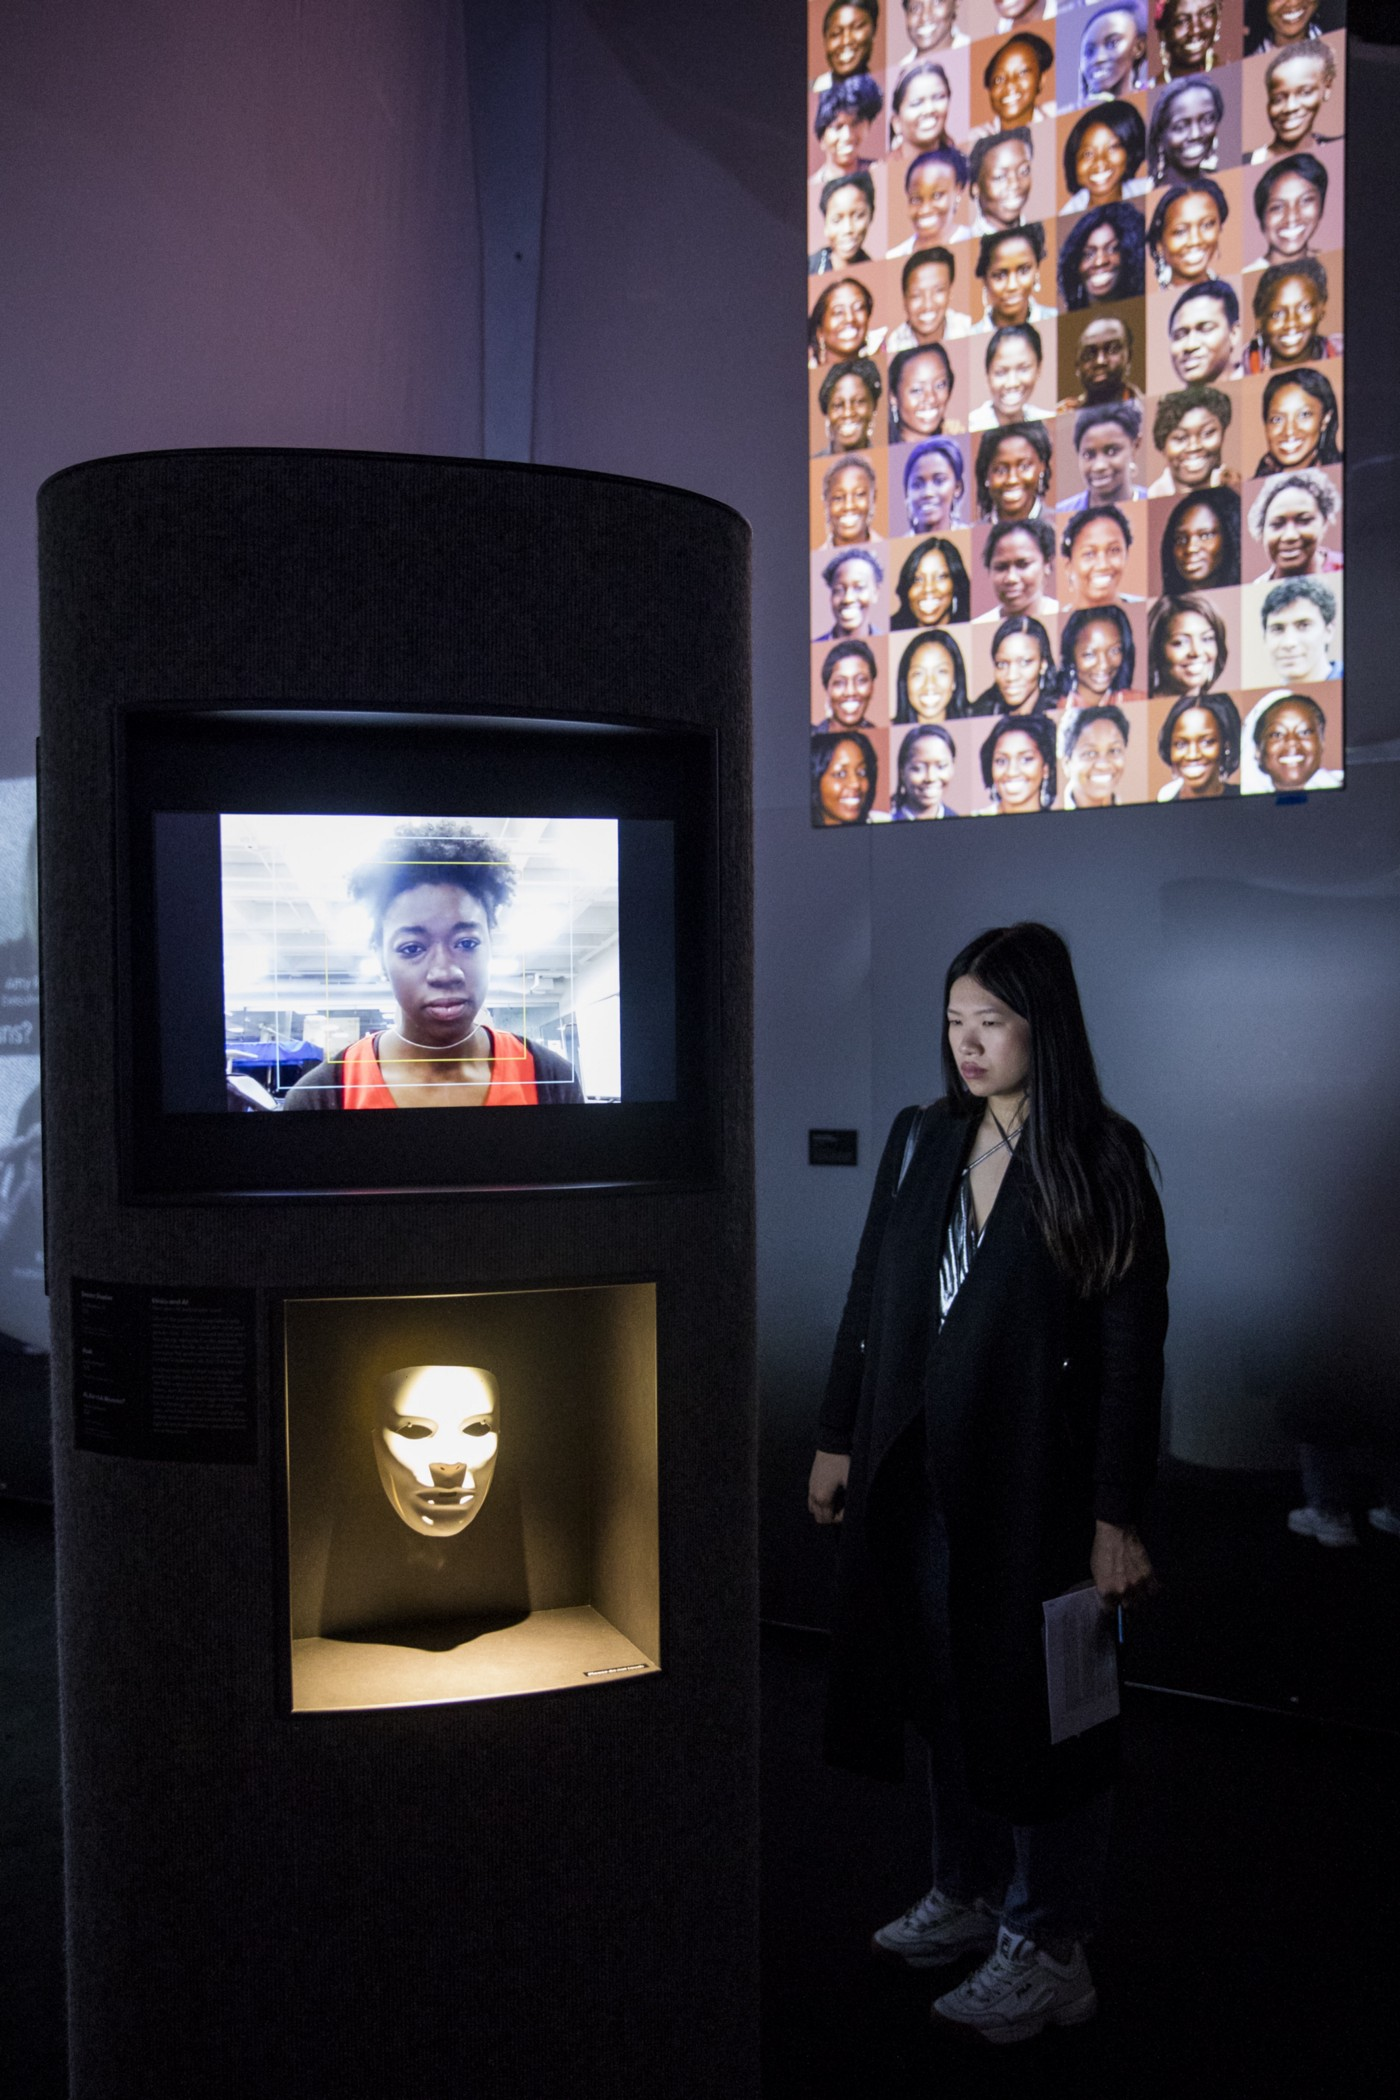 A tall, dark oblong cylindrical plinth containing two niches displaying a video of Joy Buolamwini along with a white mask.